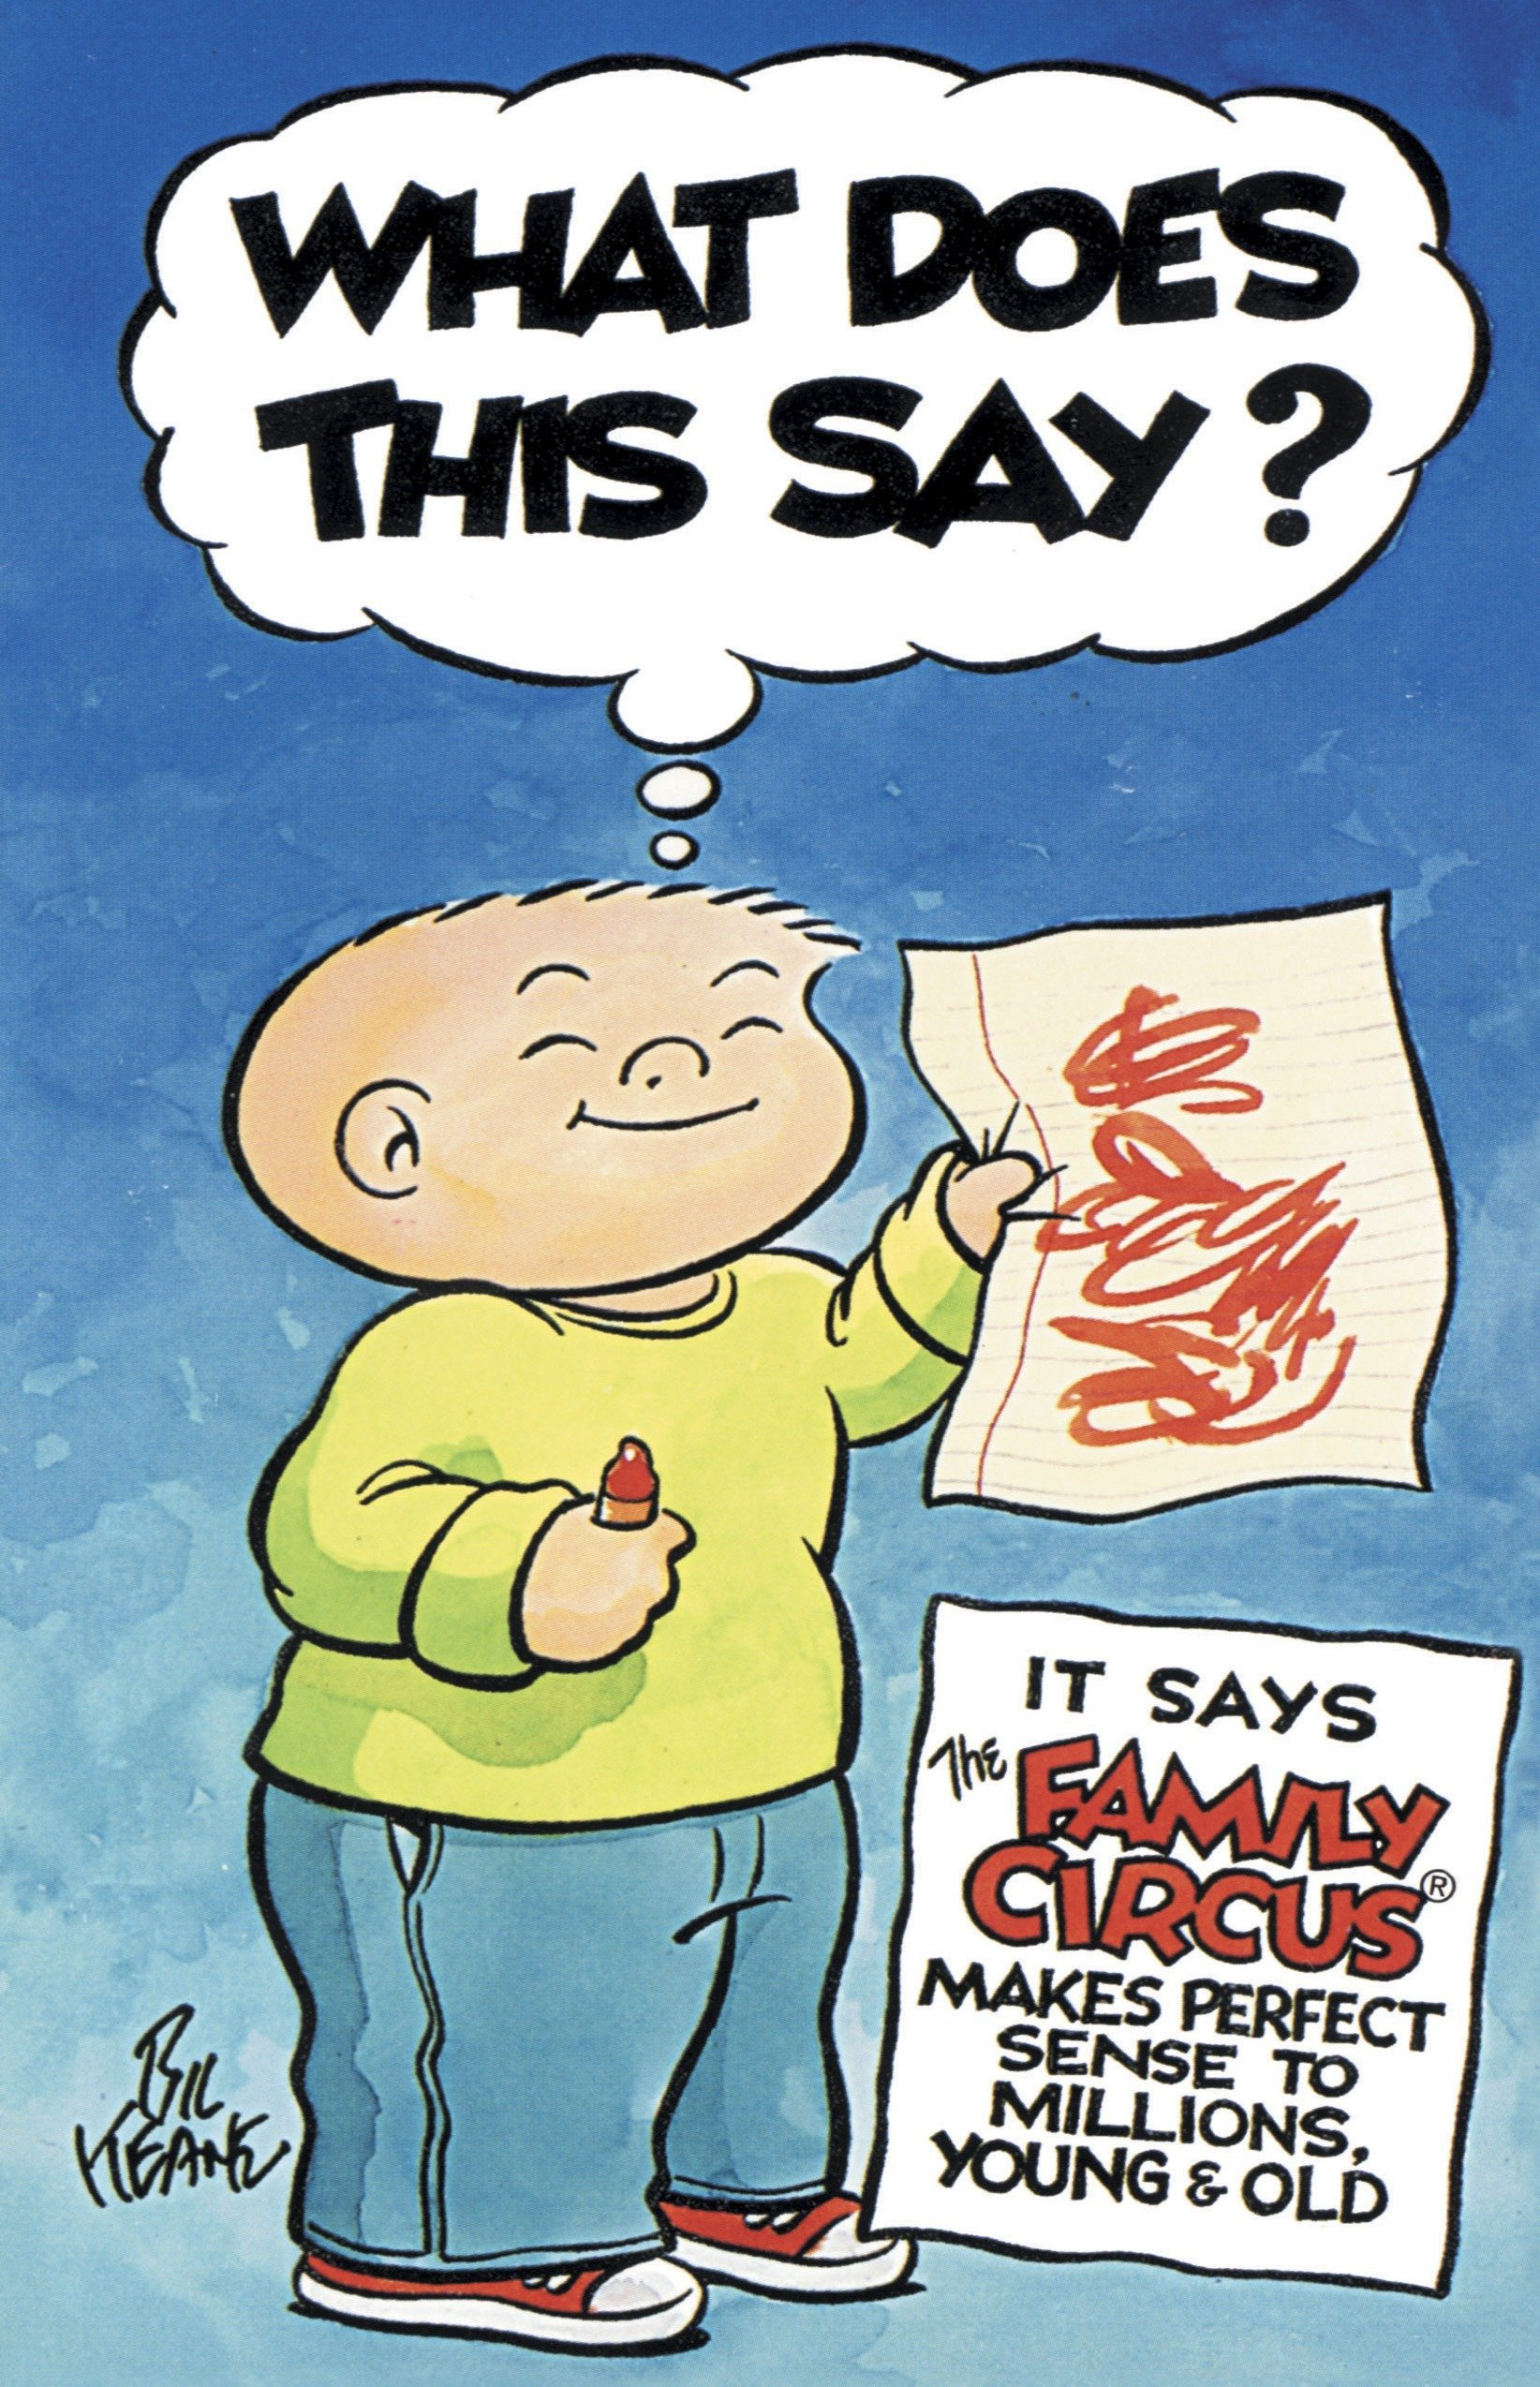 What Does This Say?: It Says The Family Circus Makes Perfect Sense to Millions, Young & Old by Fawcett